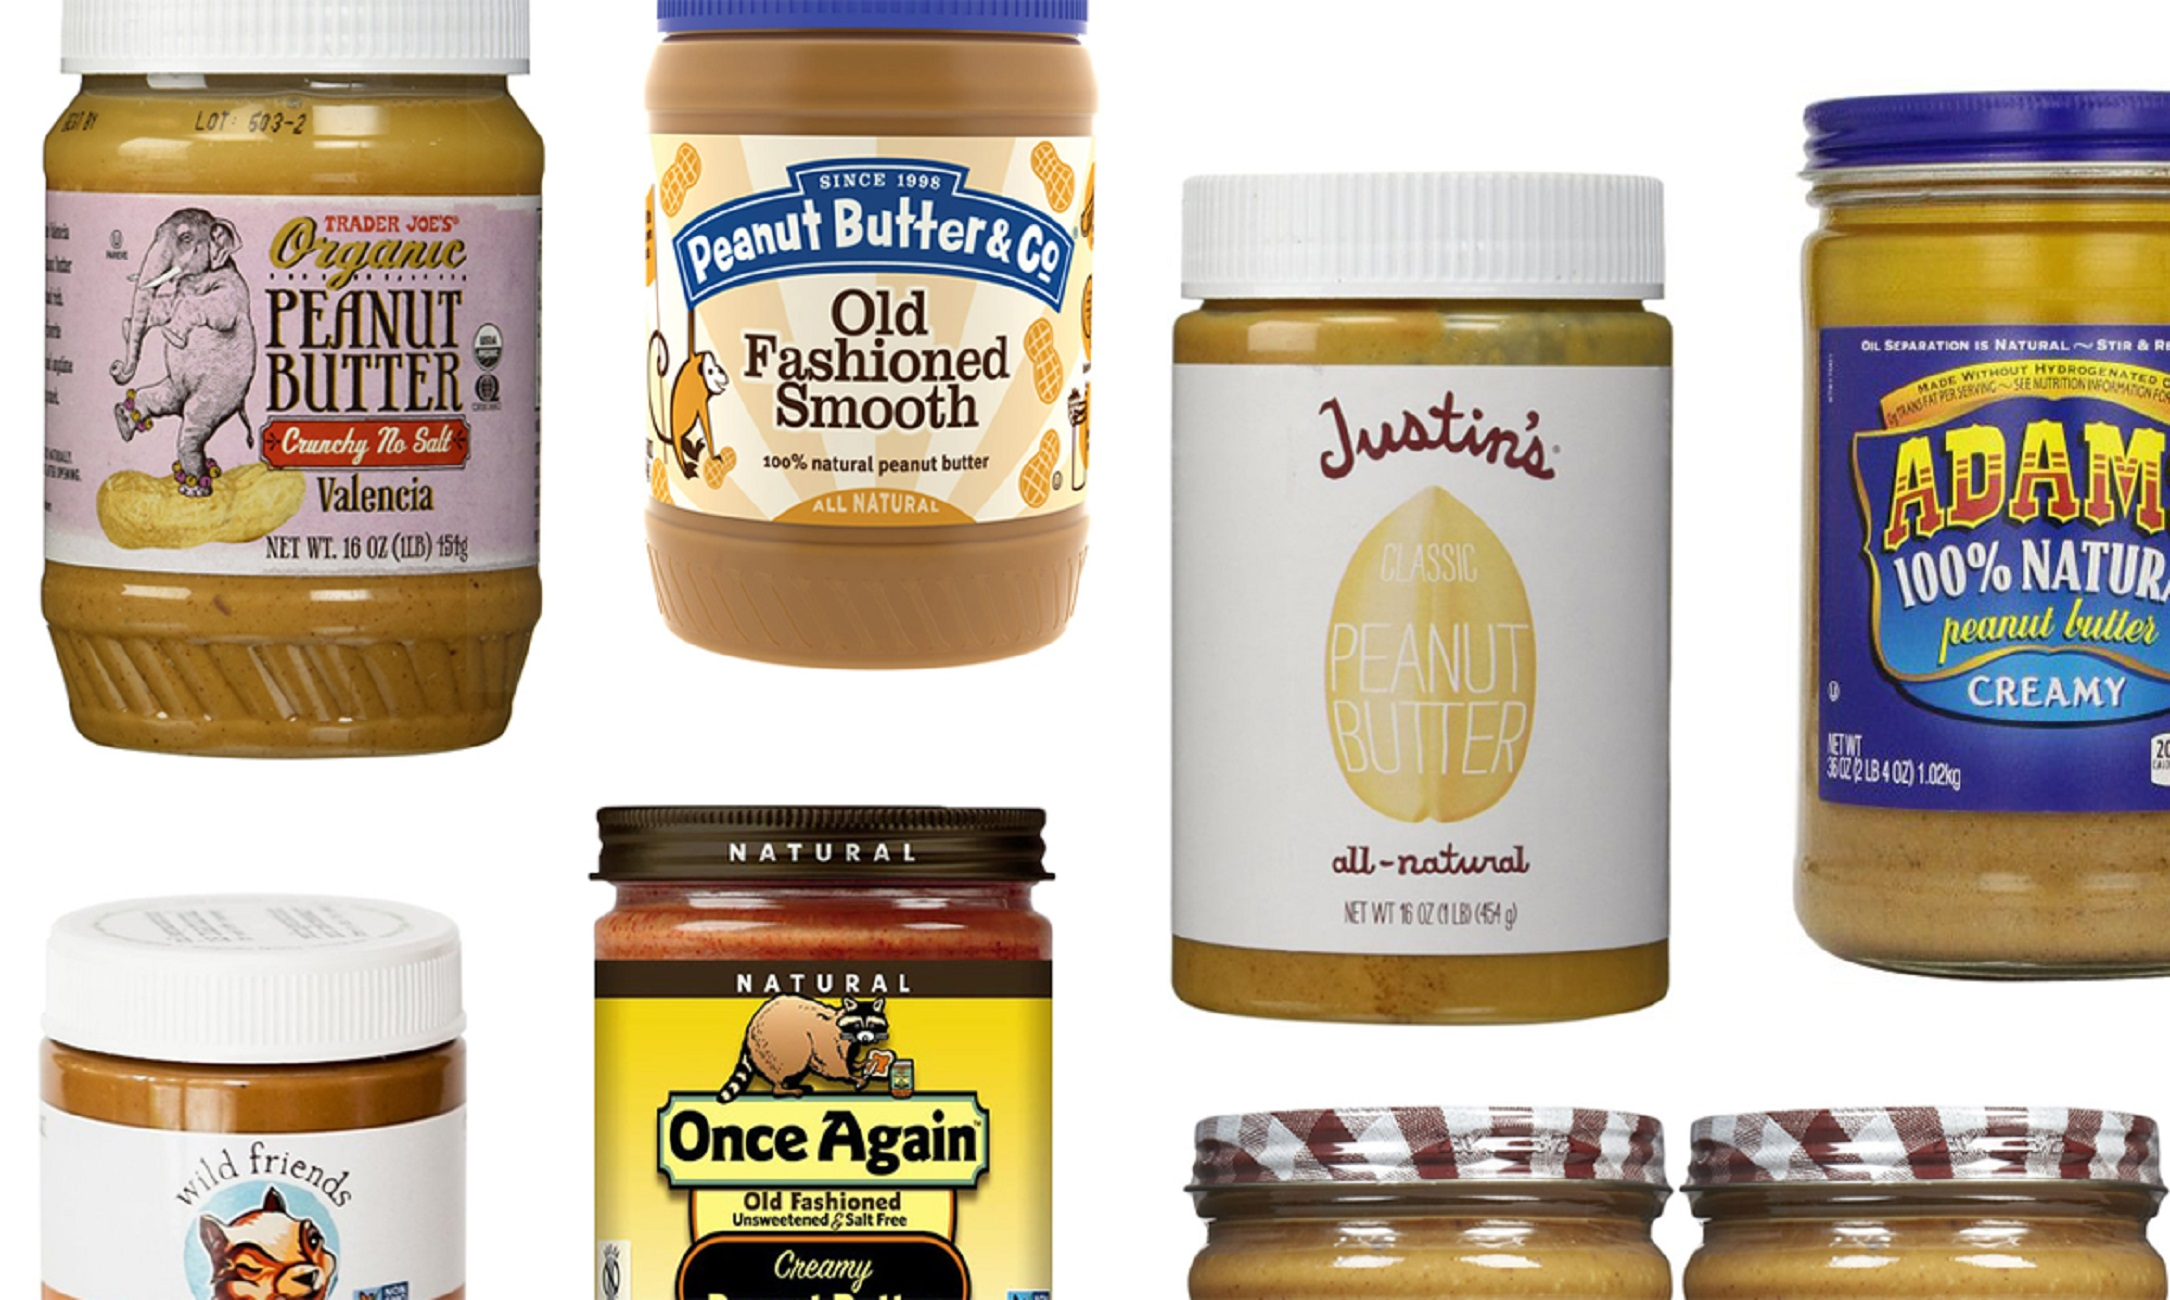 Watch Peanut Butter, Nuts and Diabetes video